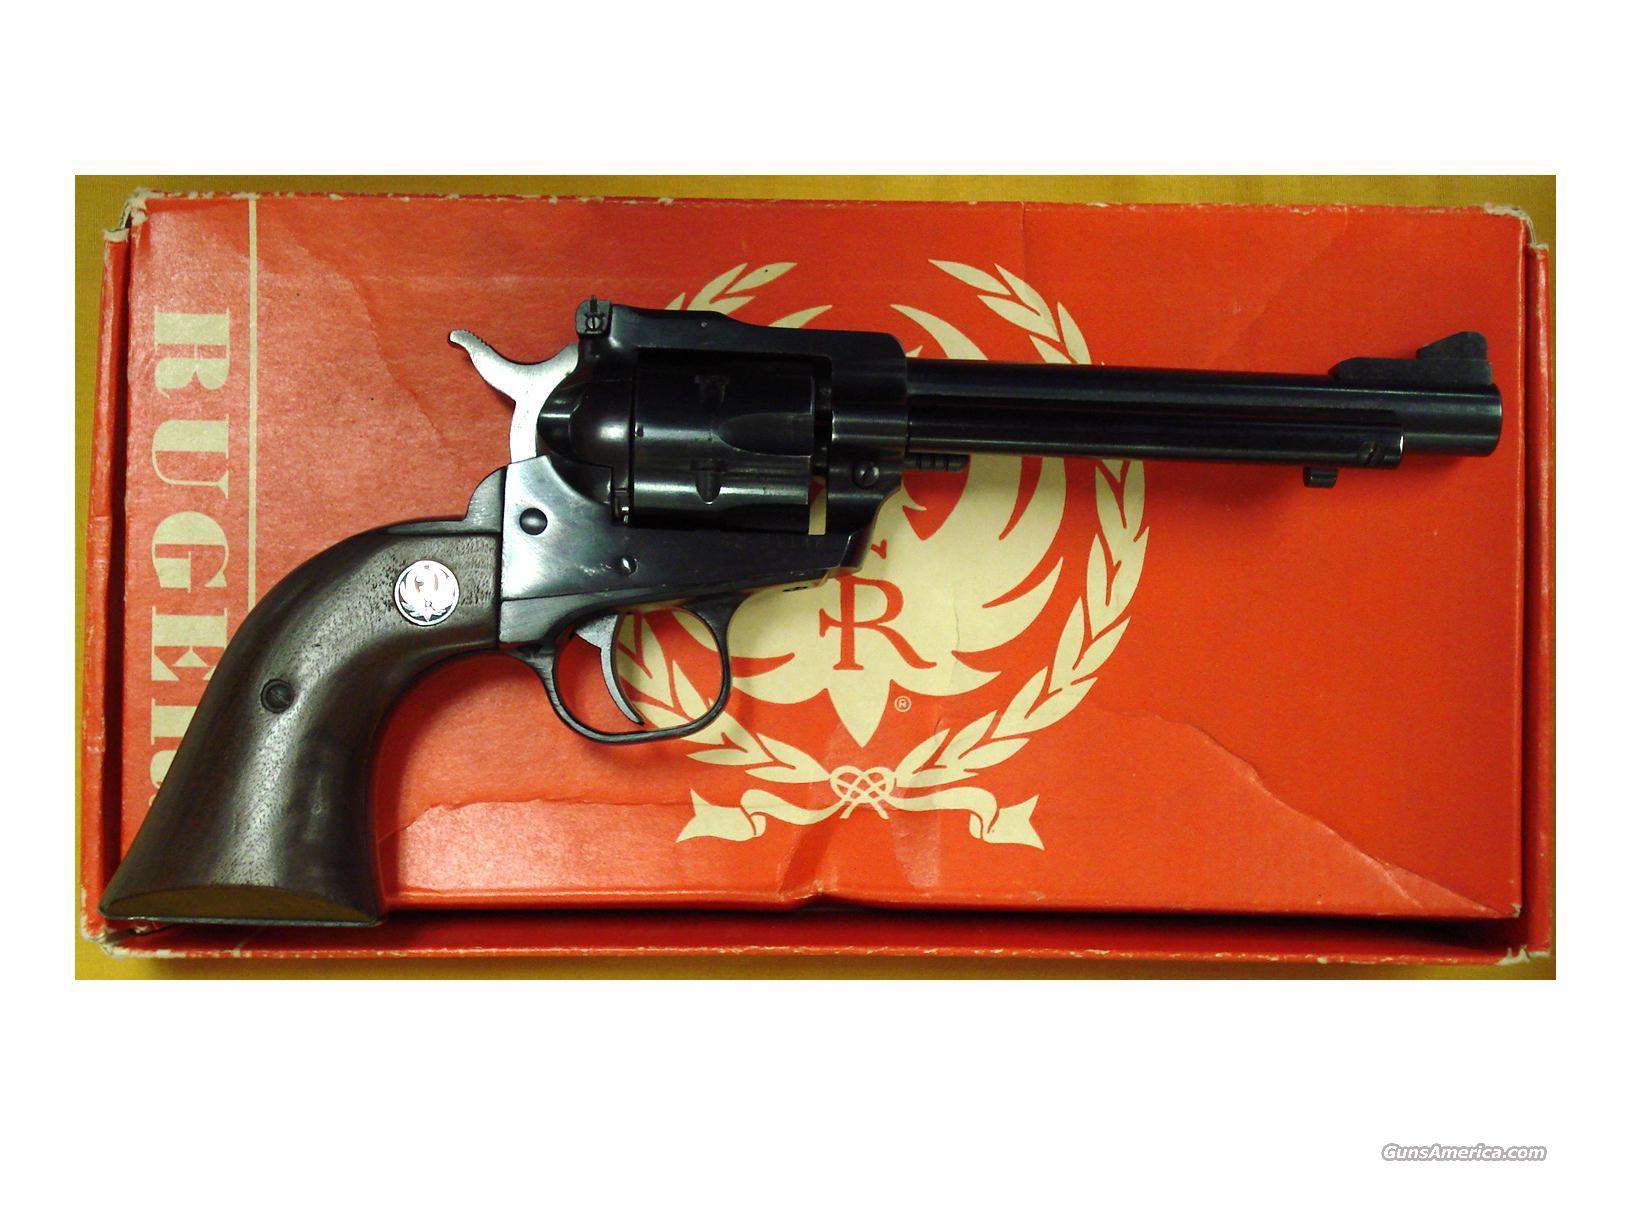 "RUGER N.M. SINGLE SIX .22LR 5 1/2""BBL  Guns > Pistols > Ruger Single Action Revolvers > Single Six Type"